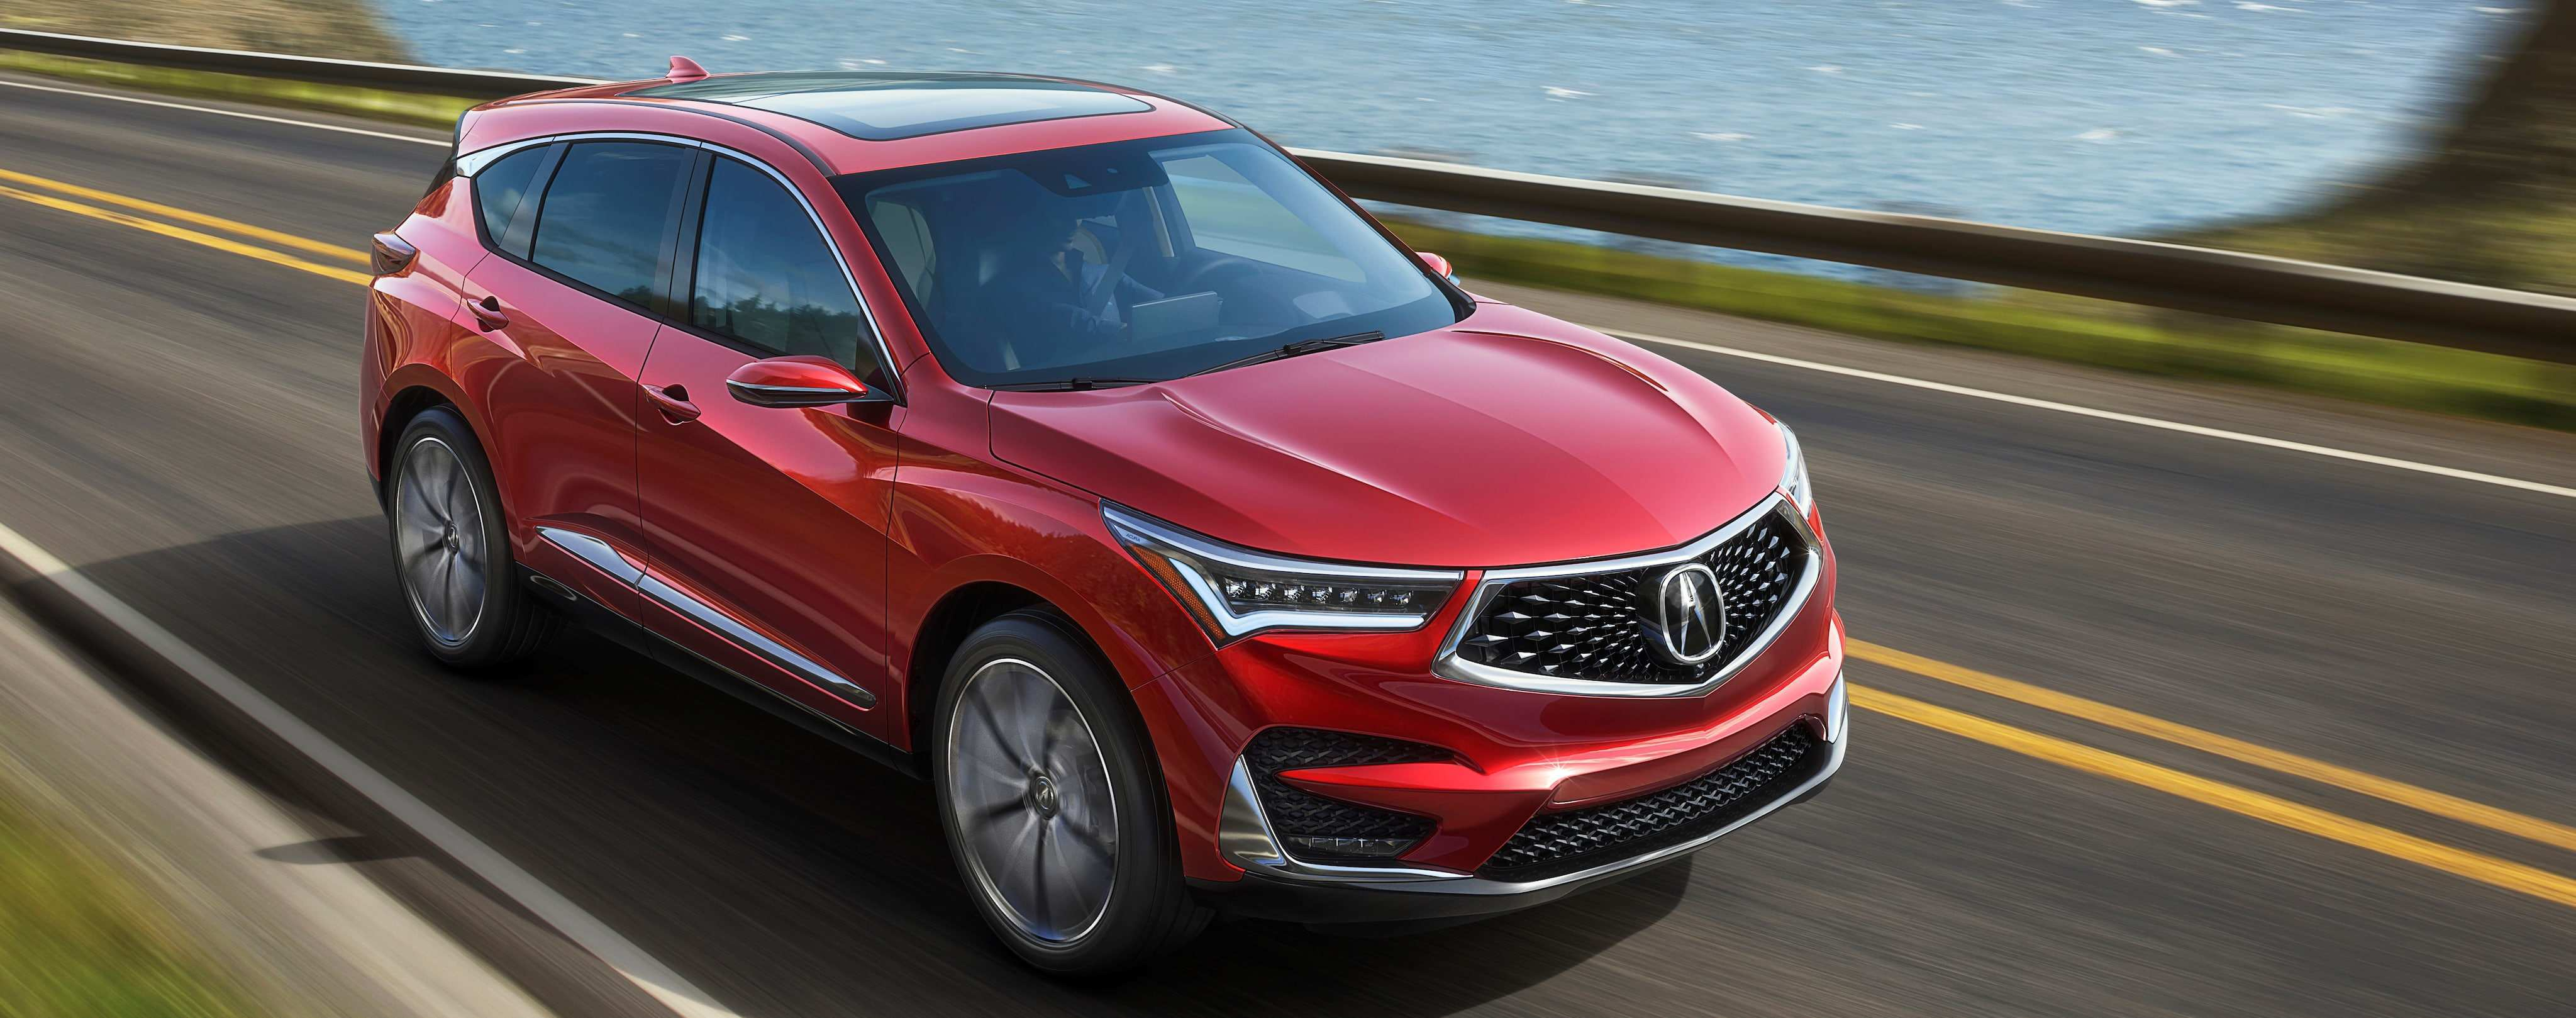 37 All New 2019 Acura 2019 Price with 2019 Acura 2019